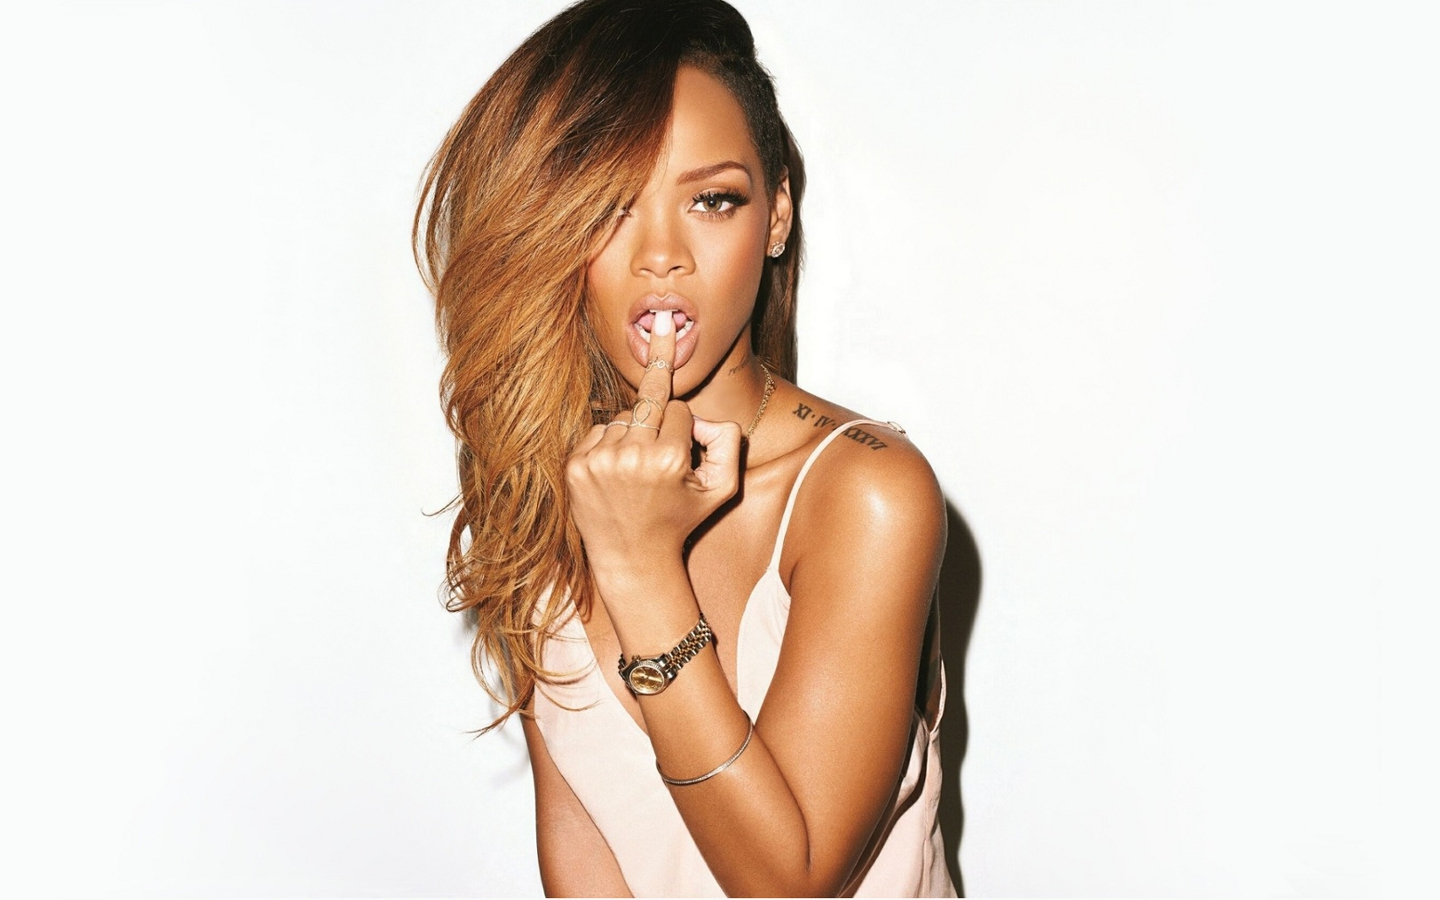 rihanna-wallpaper-23 jpg